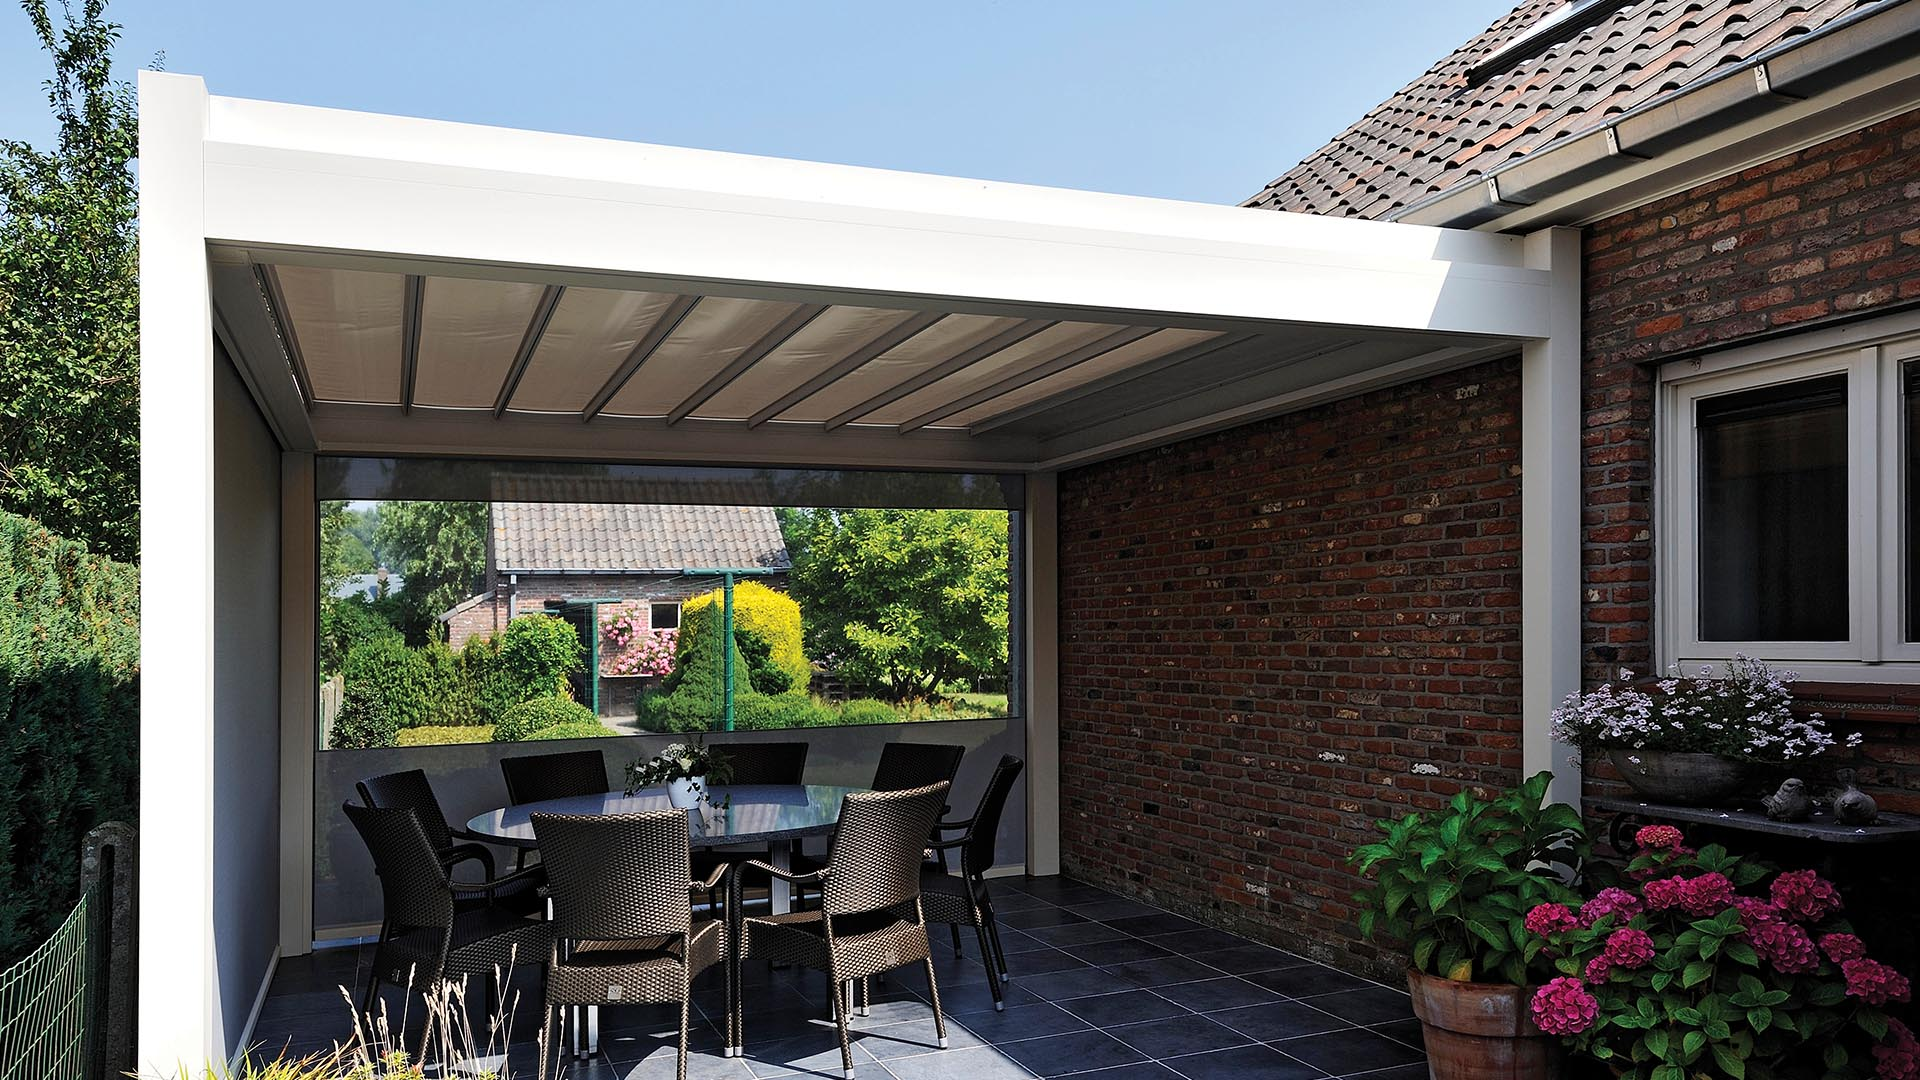 Pergola Bioclimatique Installation De Pergolas Brustor Beaufays